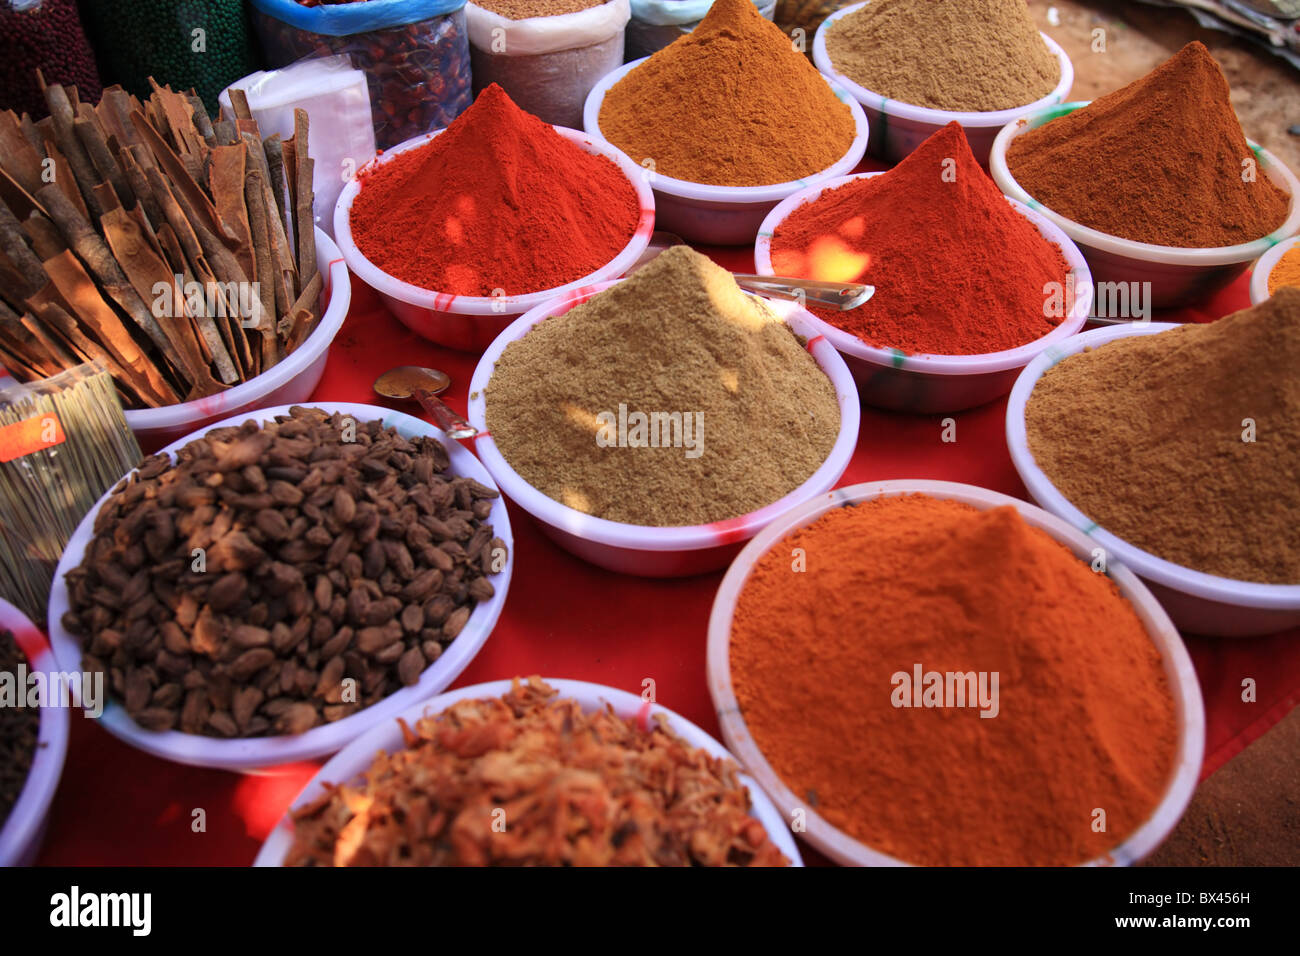 Cooking spices in Indian market in Goa - Stock Image